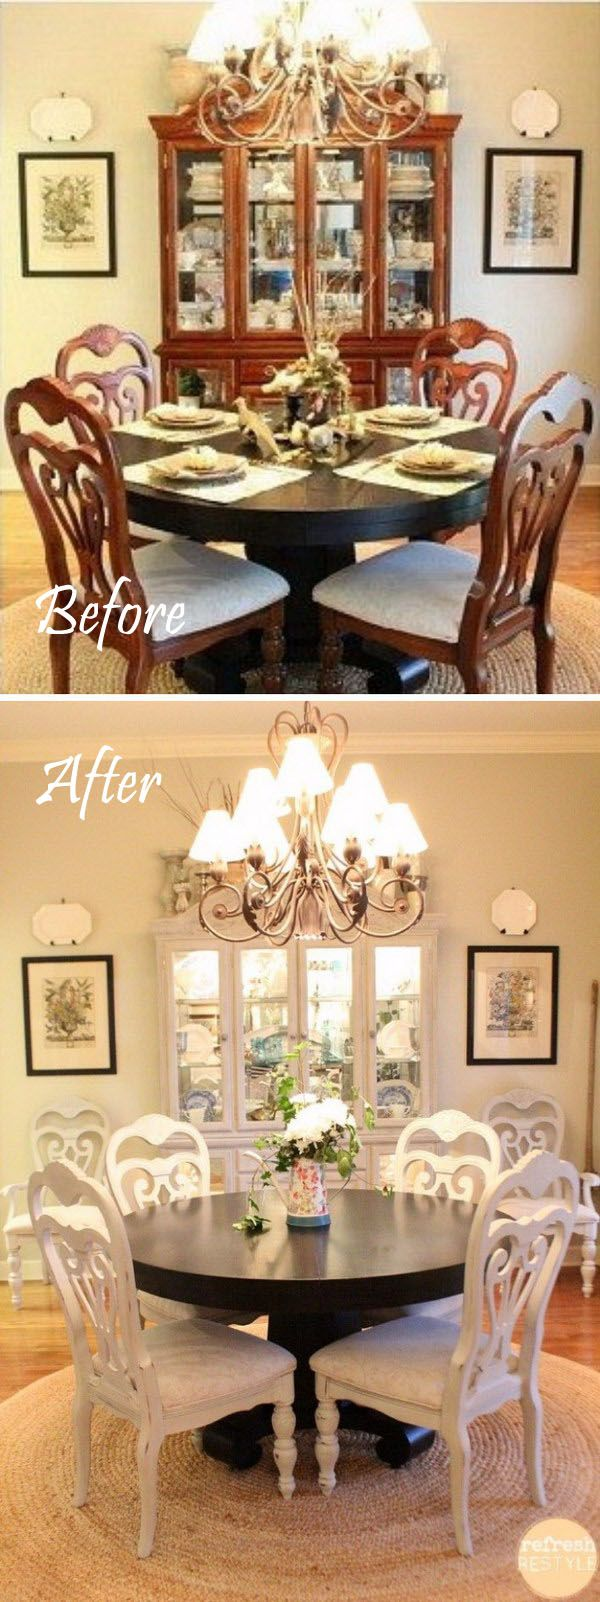 Modern farmhouse dining room makeover beautiful dining room makeover - Modern Farmhouse Dining Room Dining Room Makeover